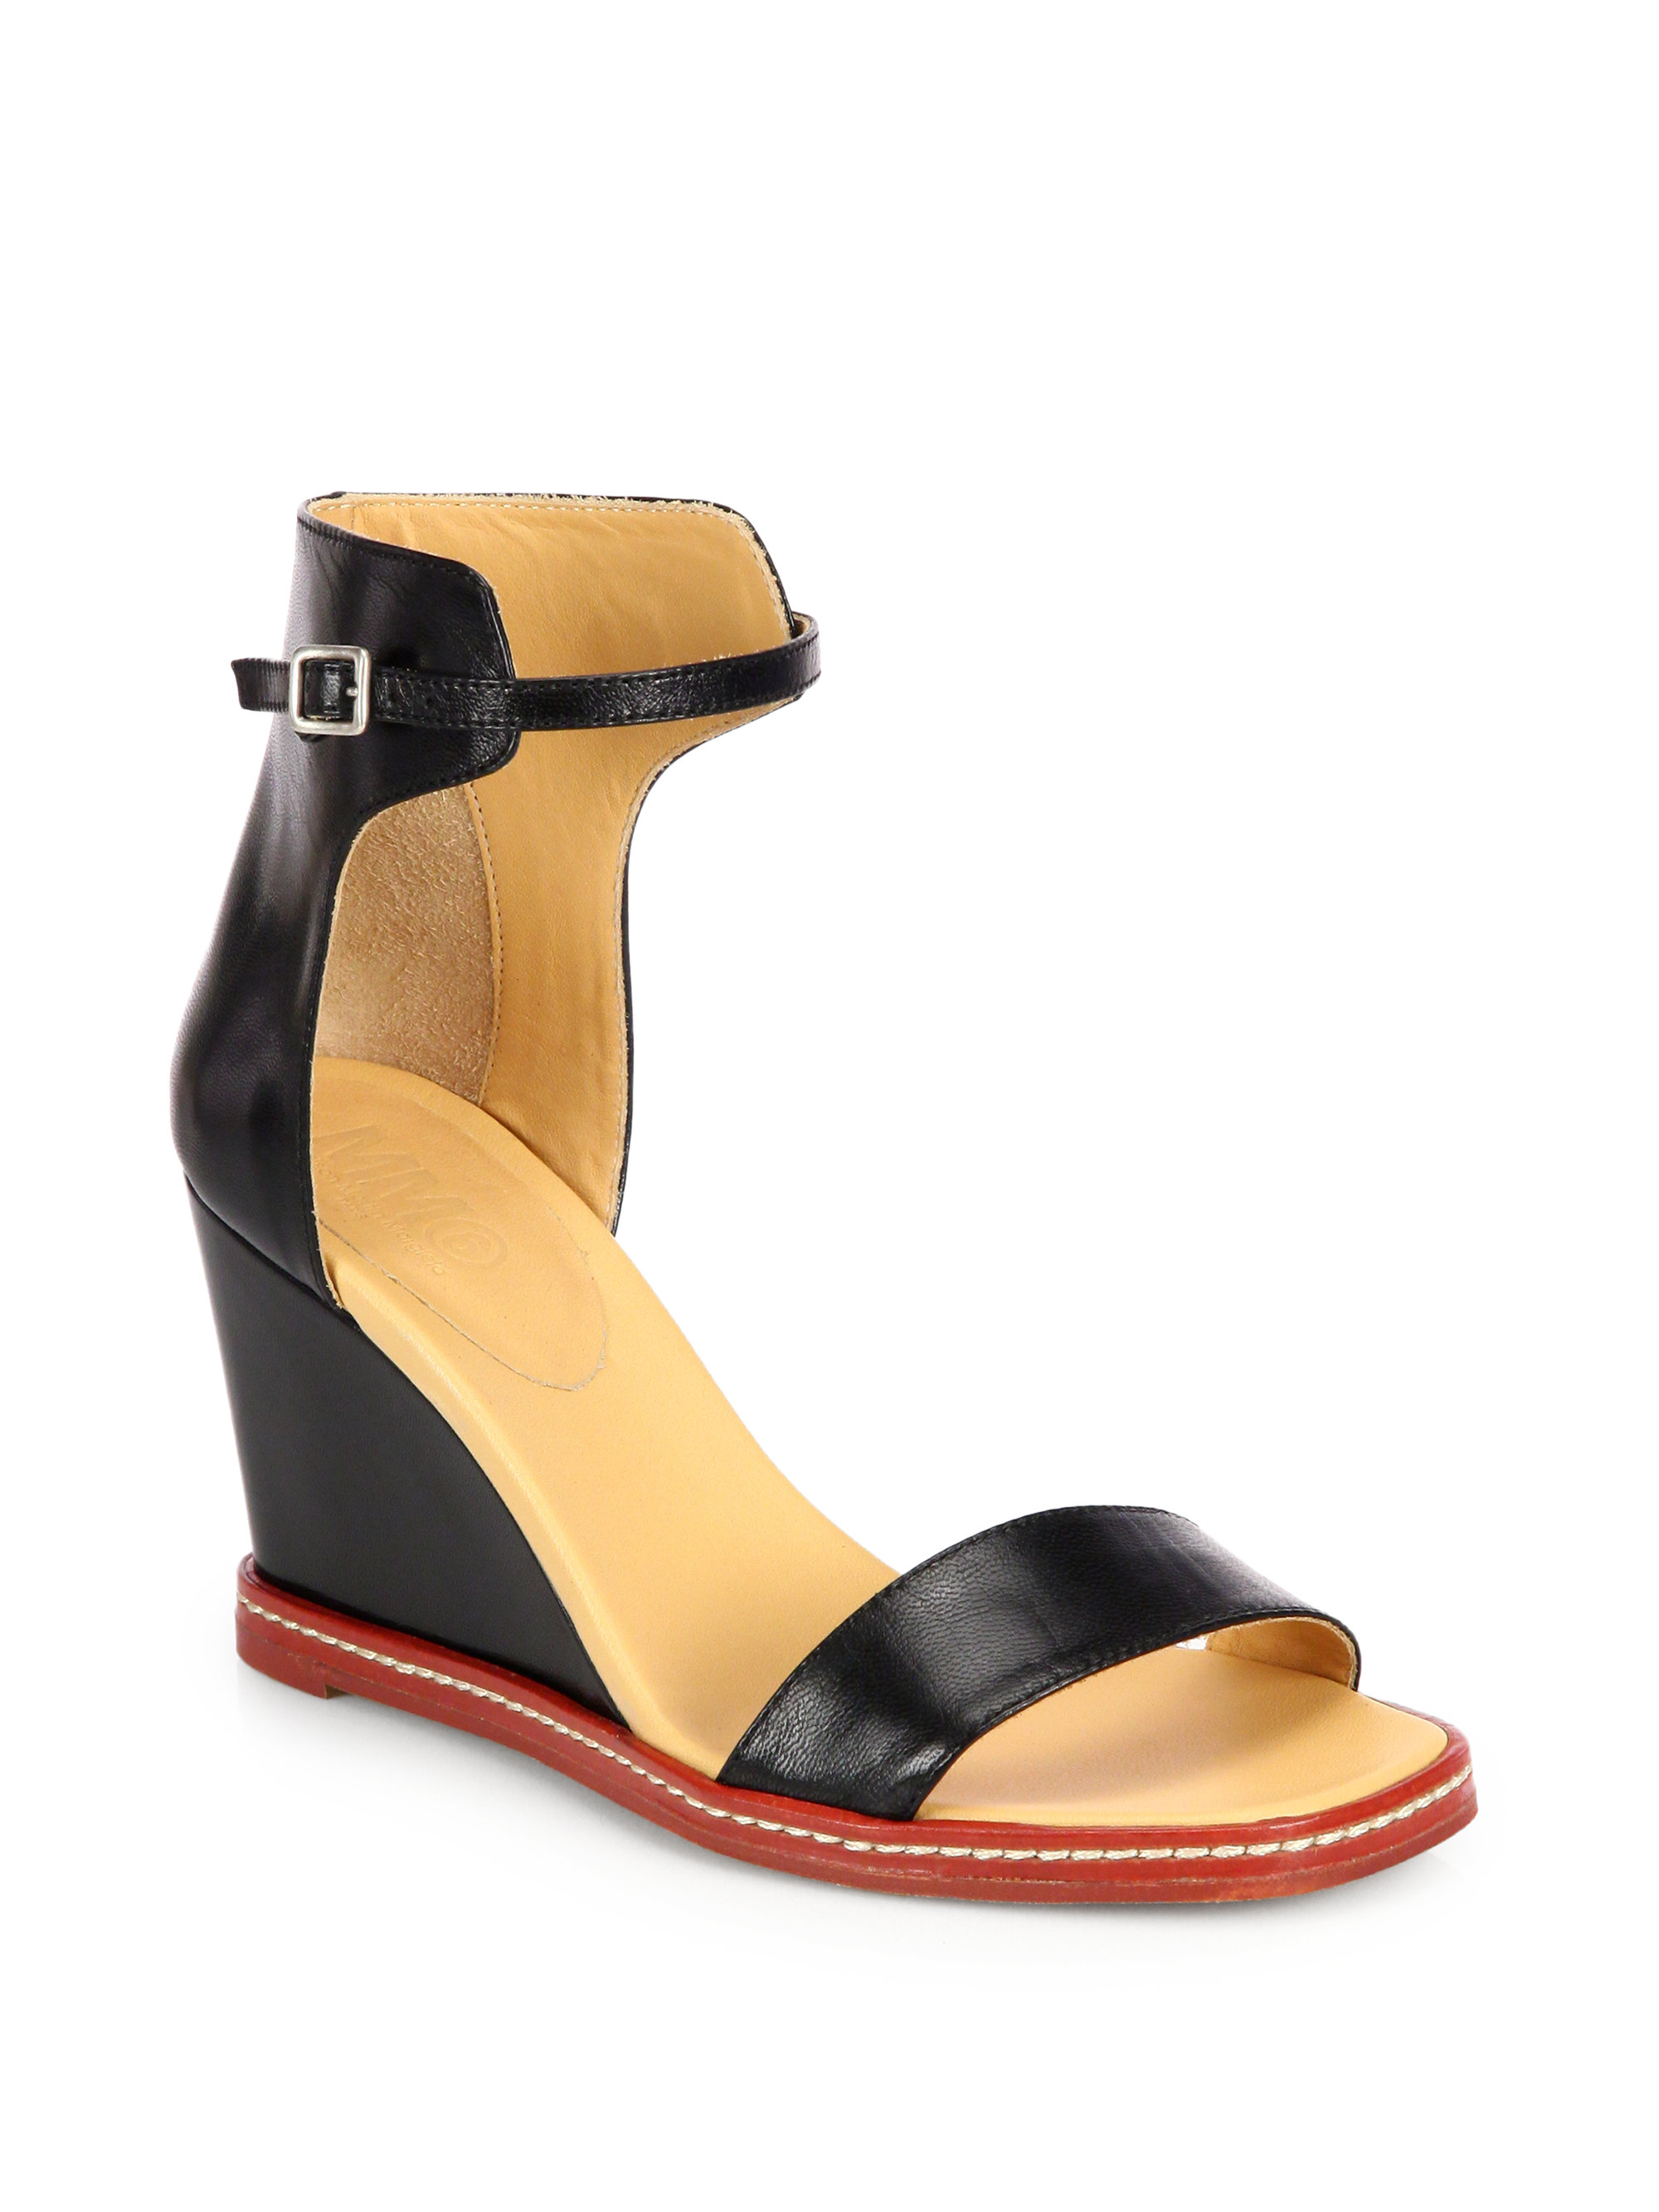 Mm6 By Maison Martin Margiela Leather Wedge Ankle-Strap ...